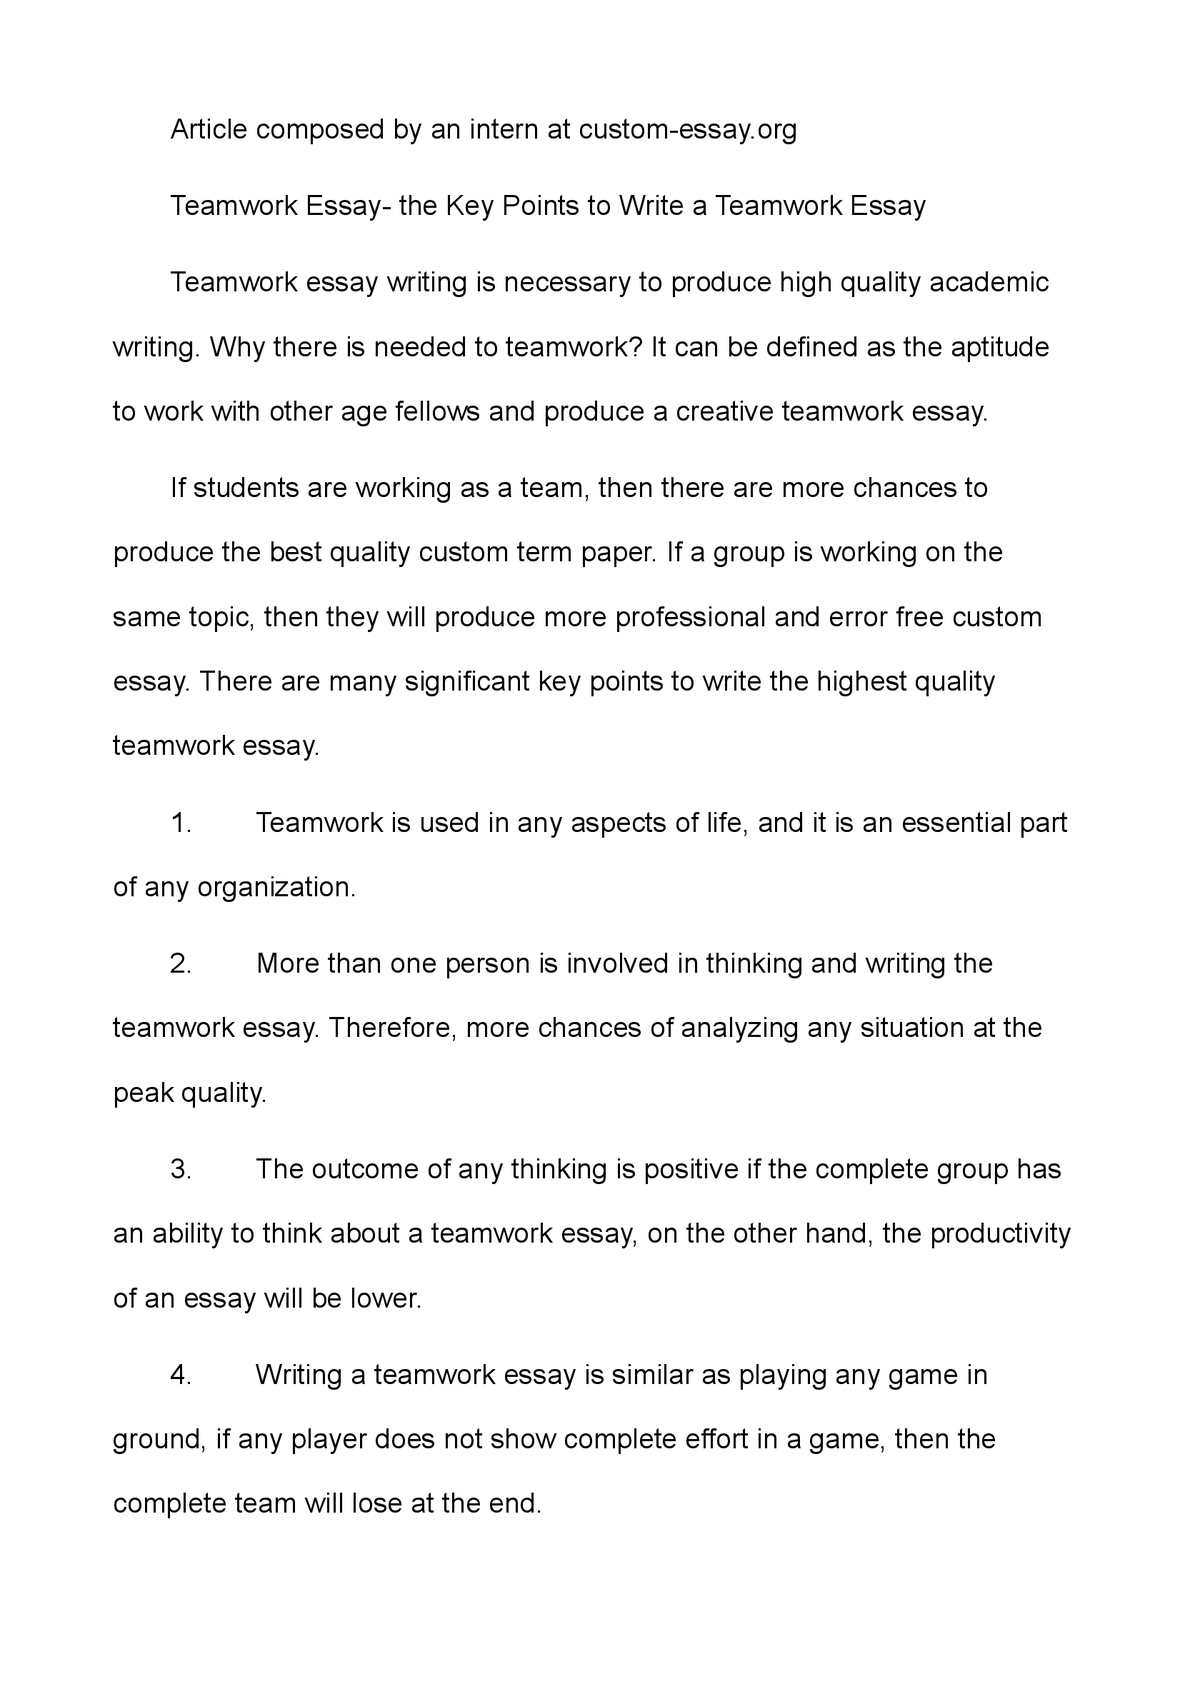 Essays On Science  Obesity Essay Thesis also Example Of Essay Proposal Calamo  Teamwork Essay The Key Points To Write A Teamwork Essay Modest Proposal Essay Ideas